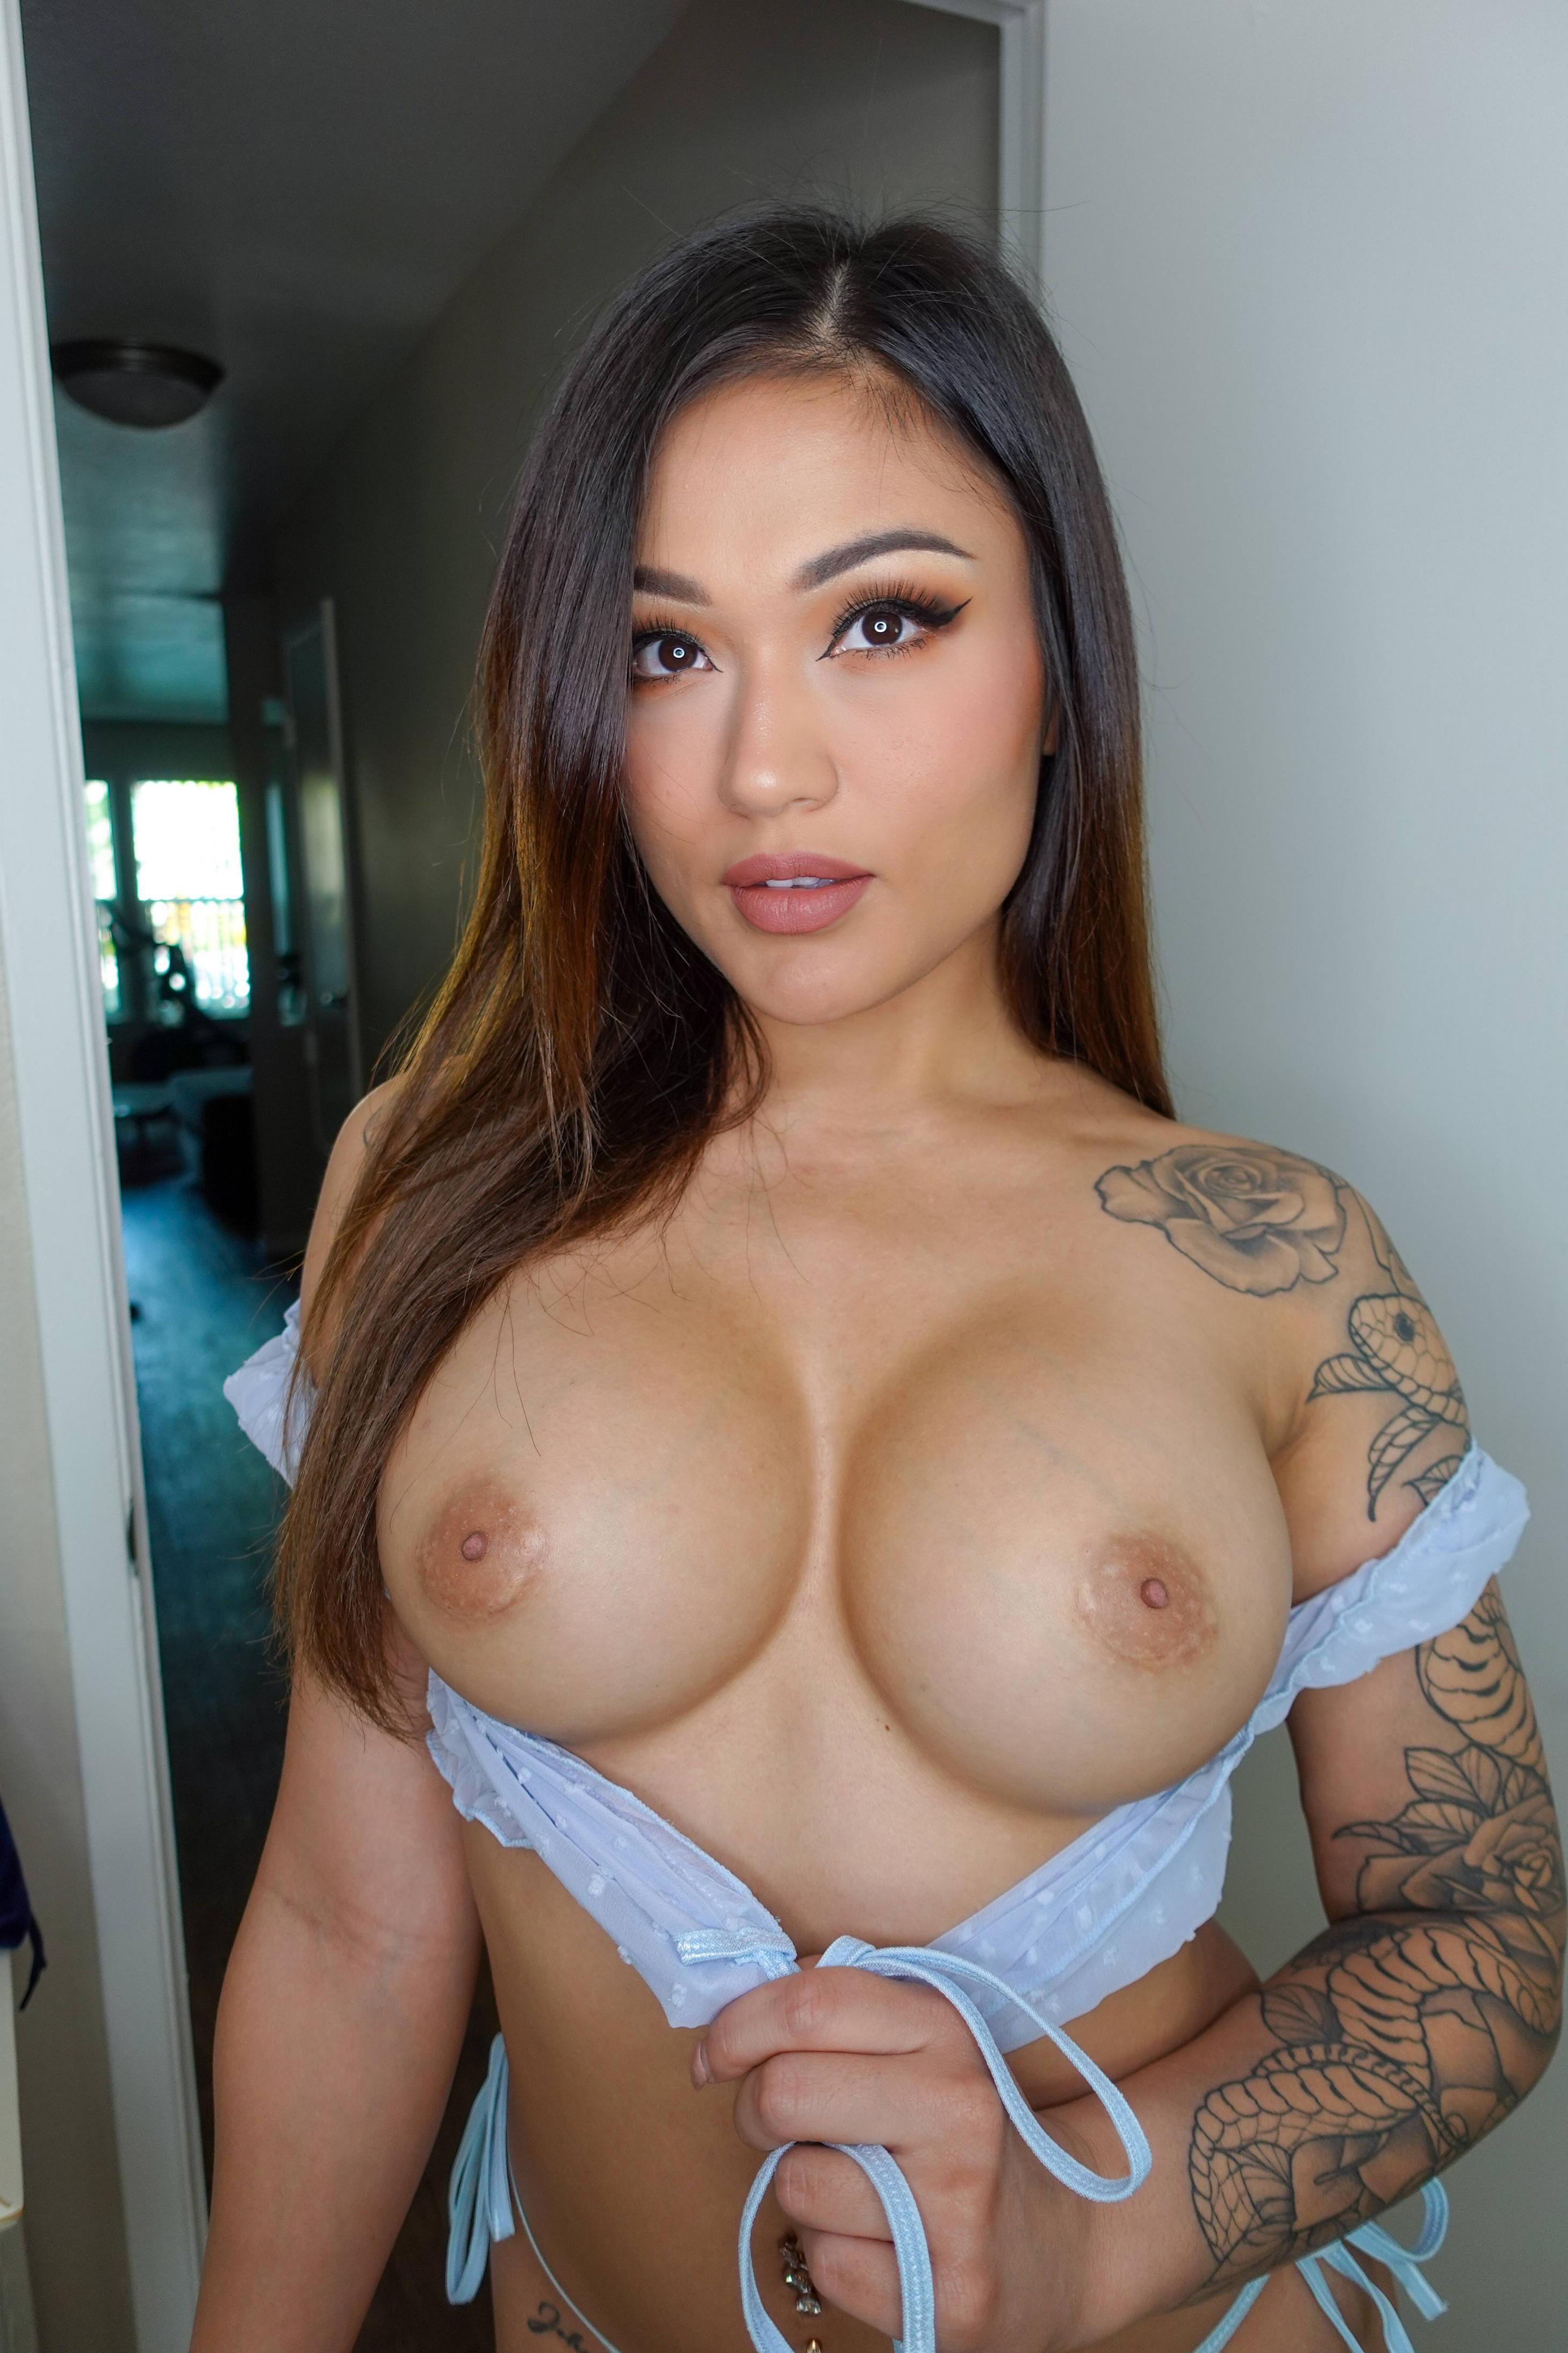 One of our naked asian pics called My tits are down here.